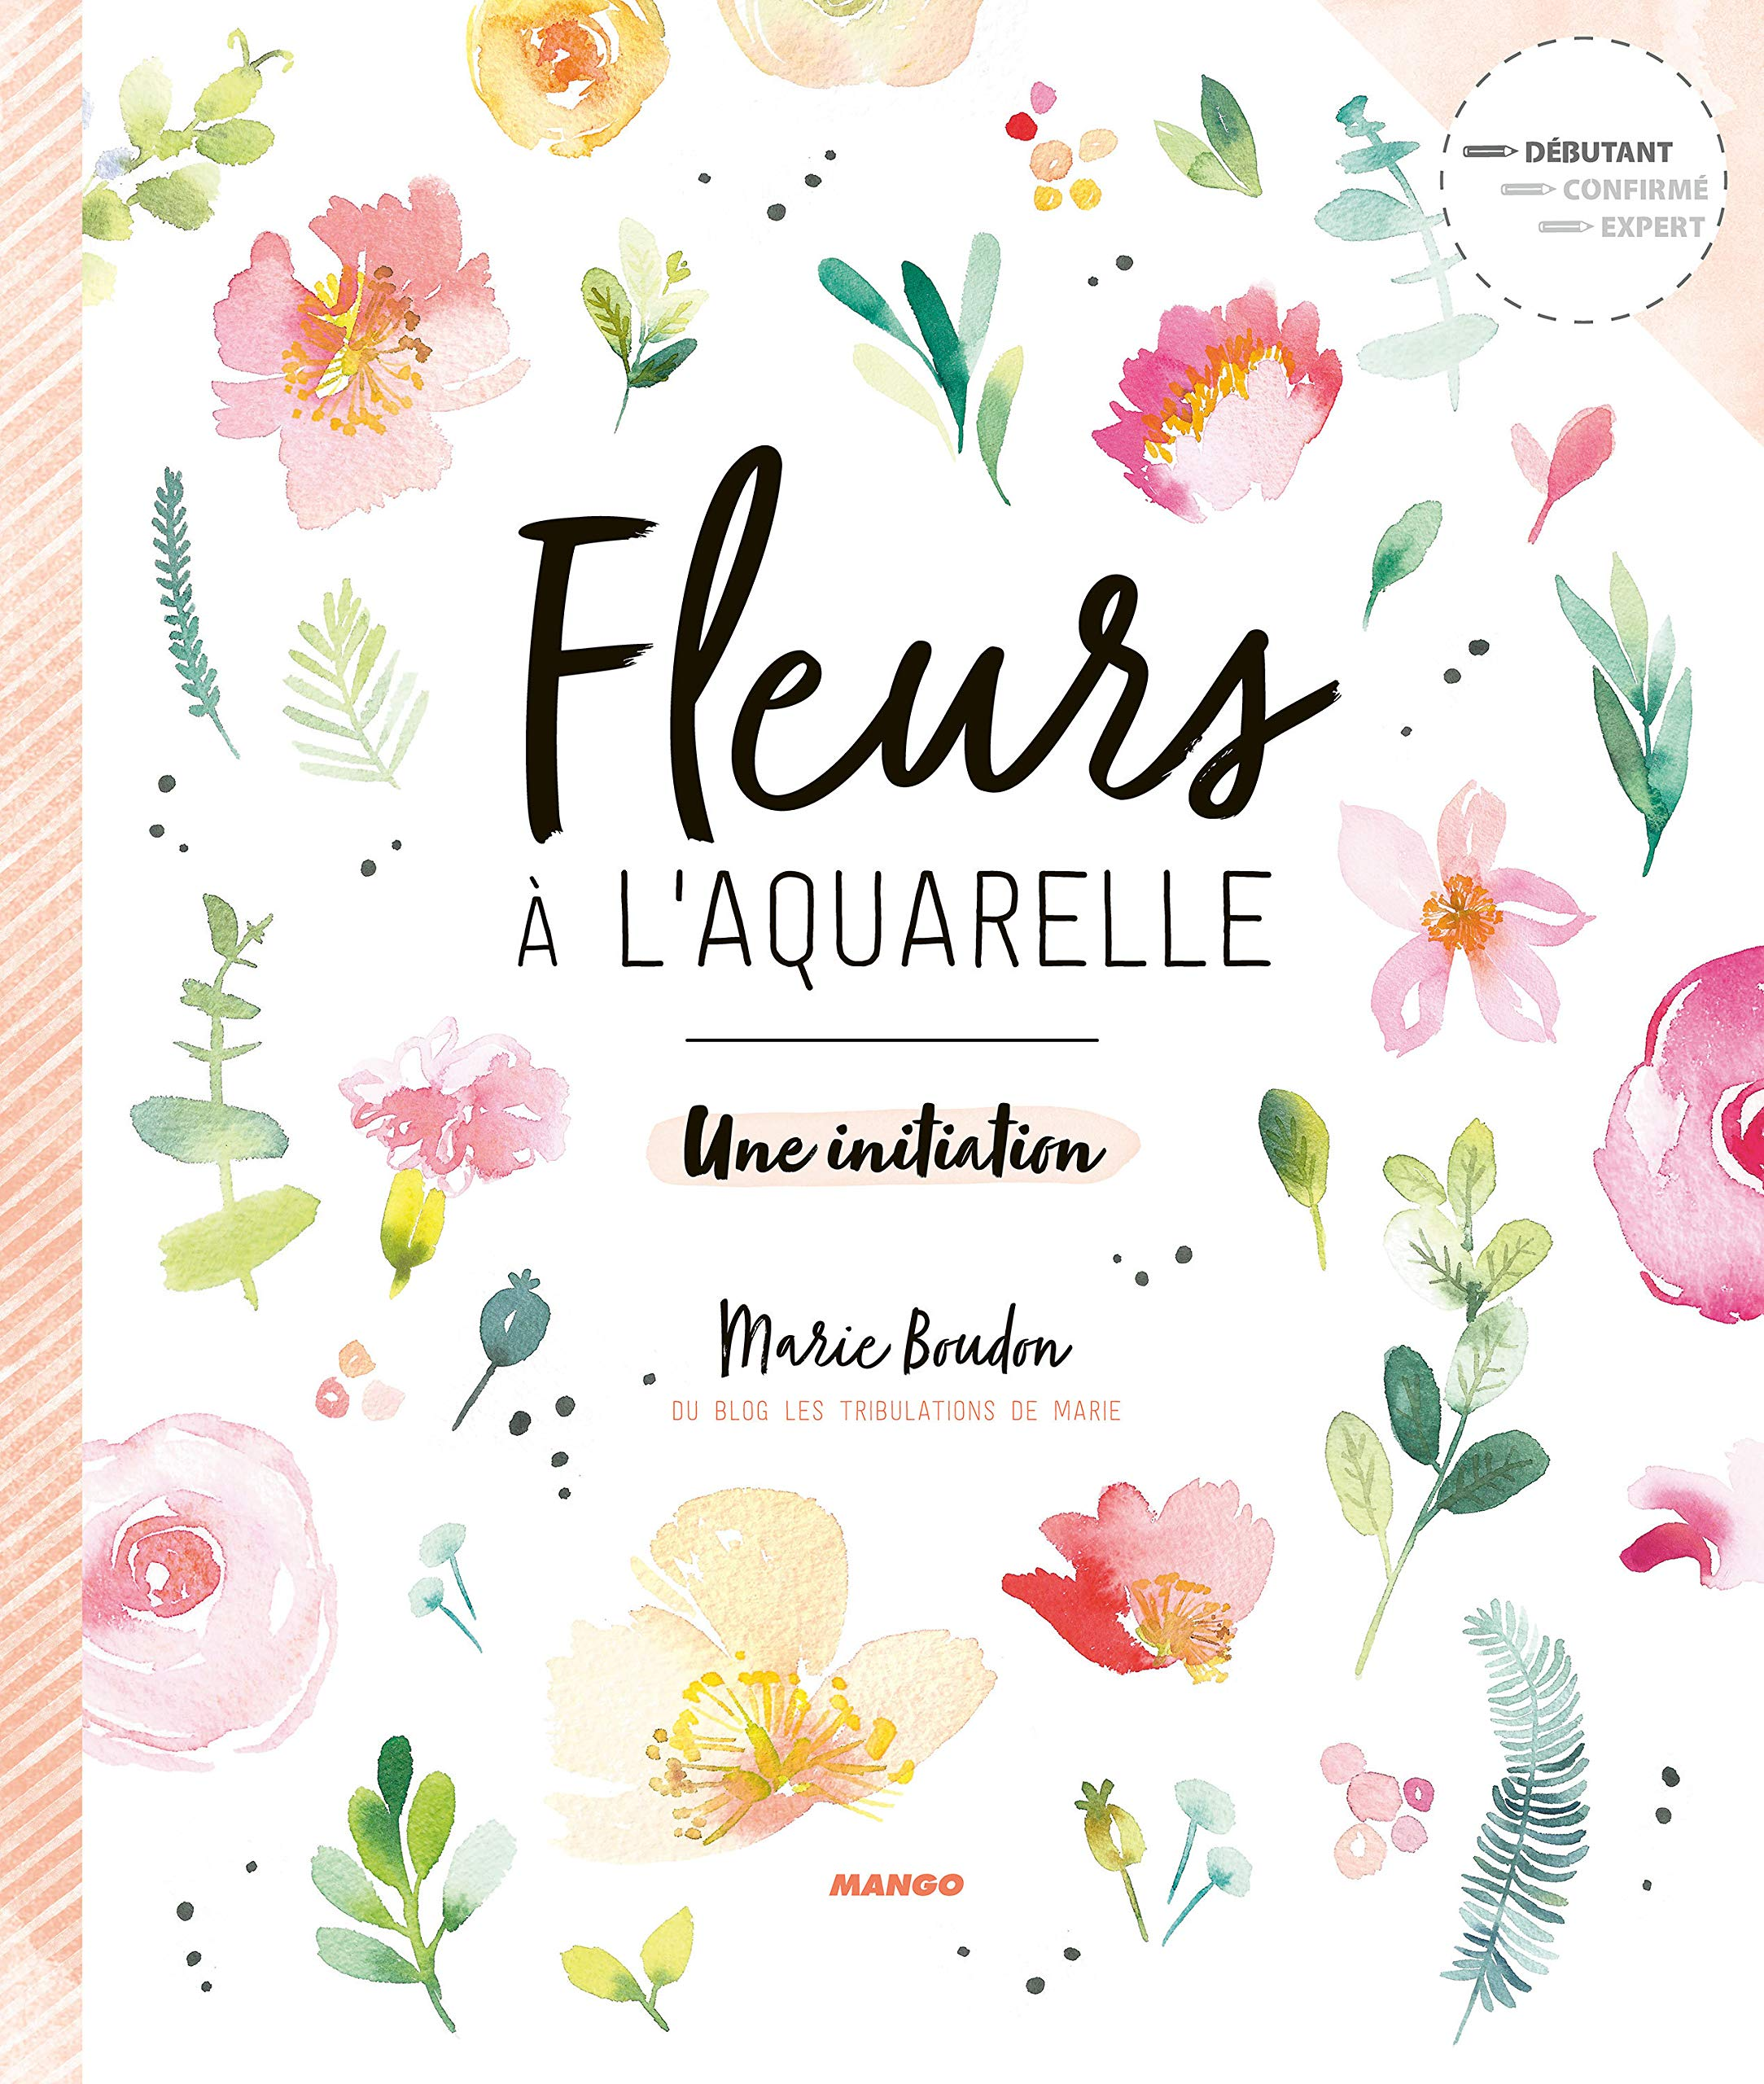 Amazon.fr , Fleurs à l\u0027aquarelle  Une initiation , Marie